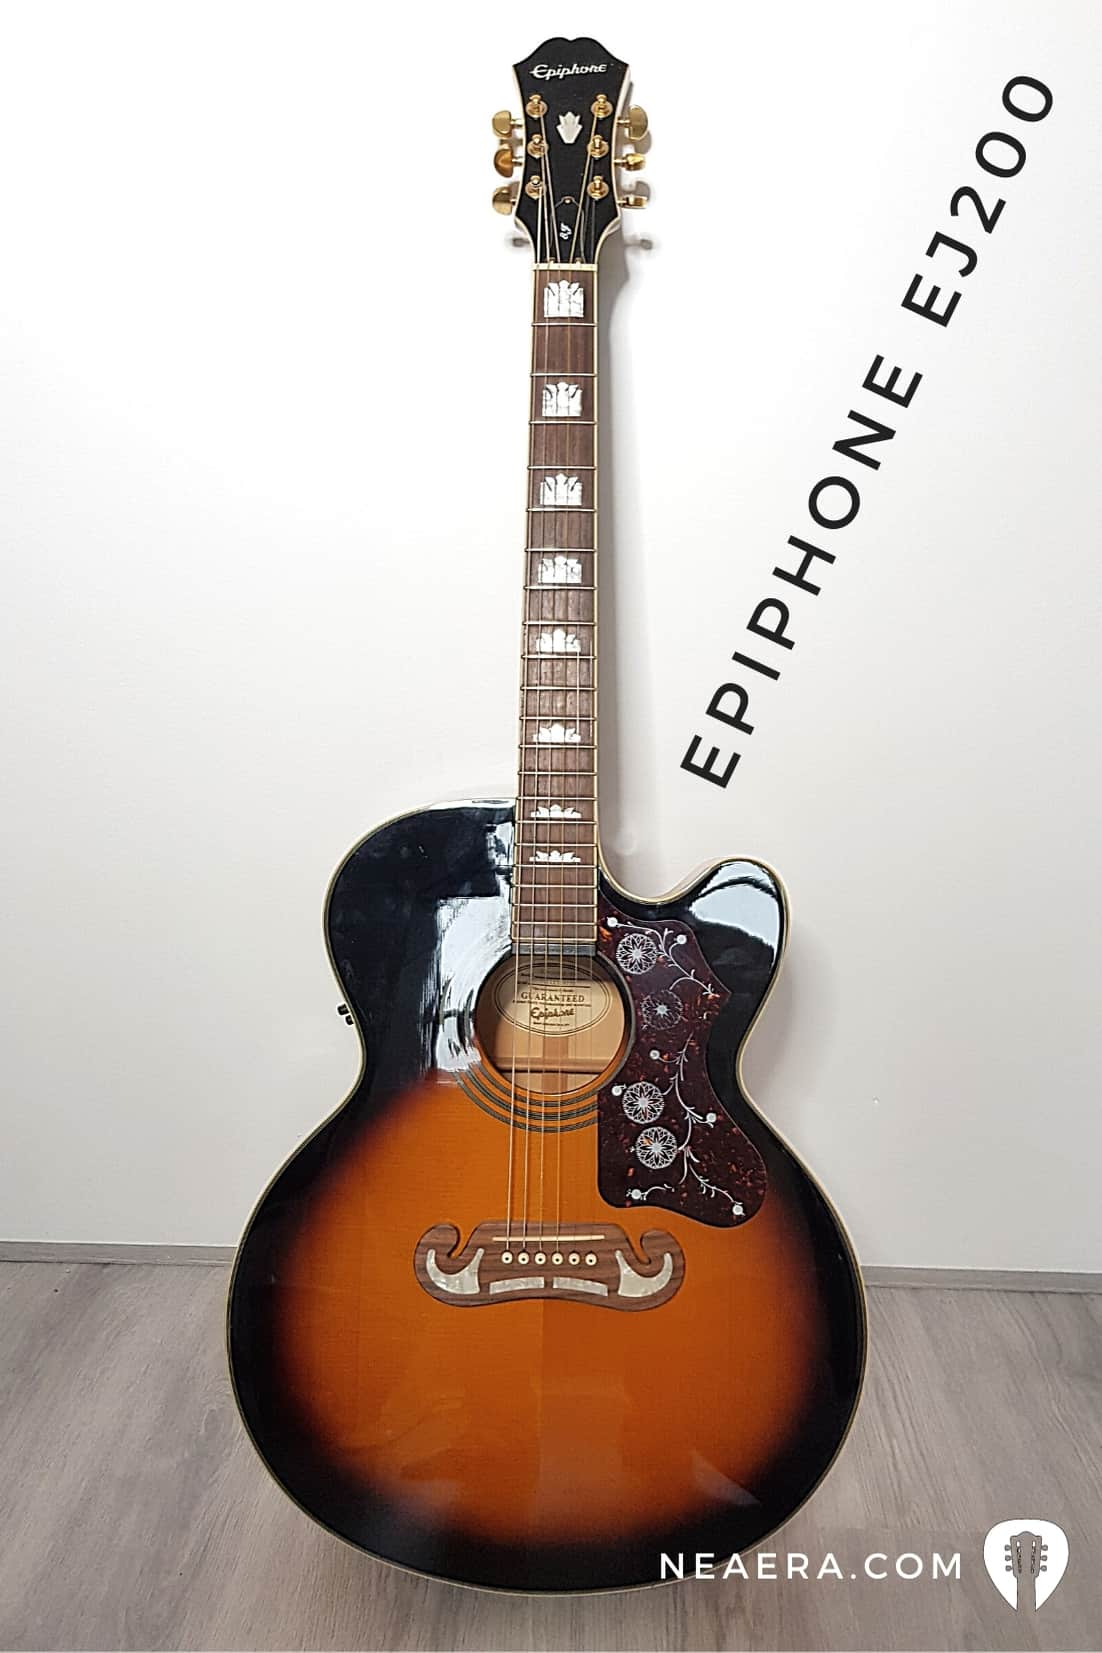 Best jumbo acoustic guitar for beginners: Epiphone EJ-200 SCE